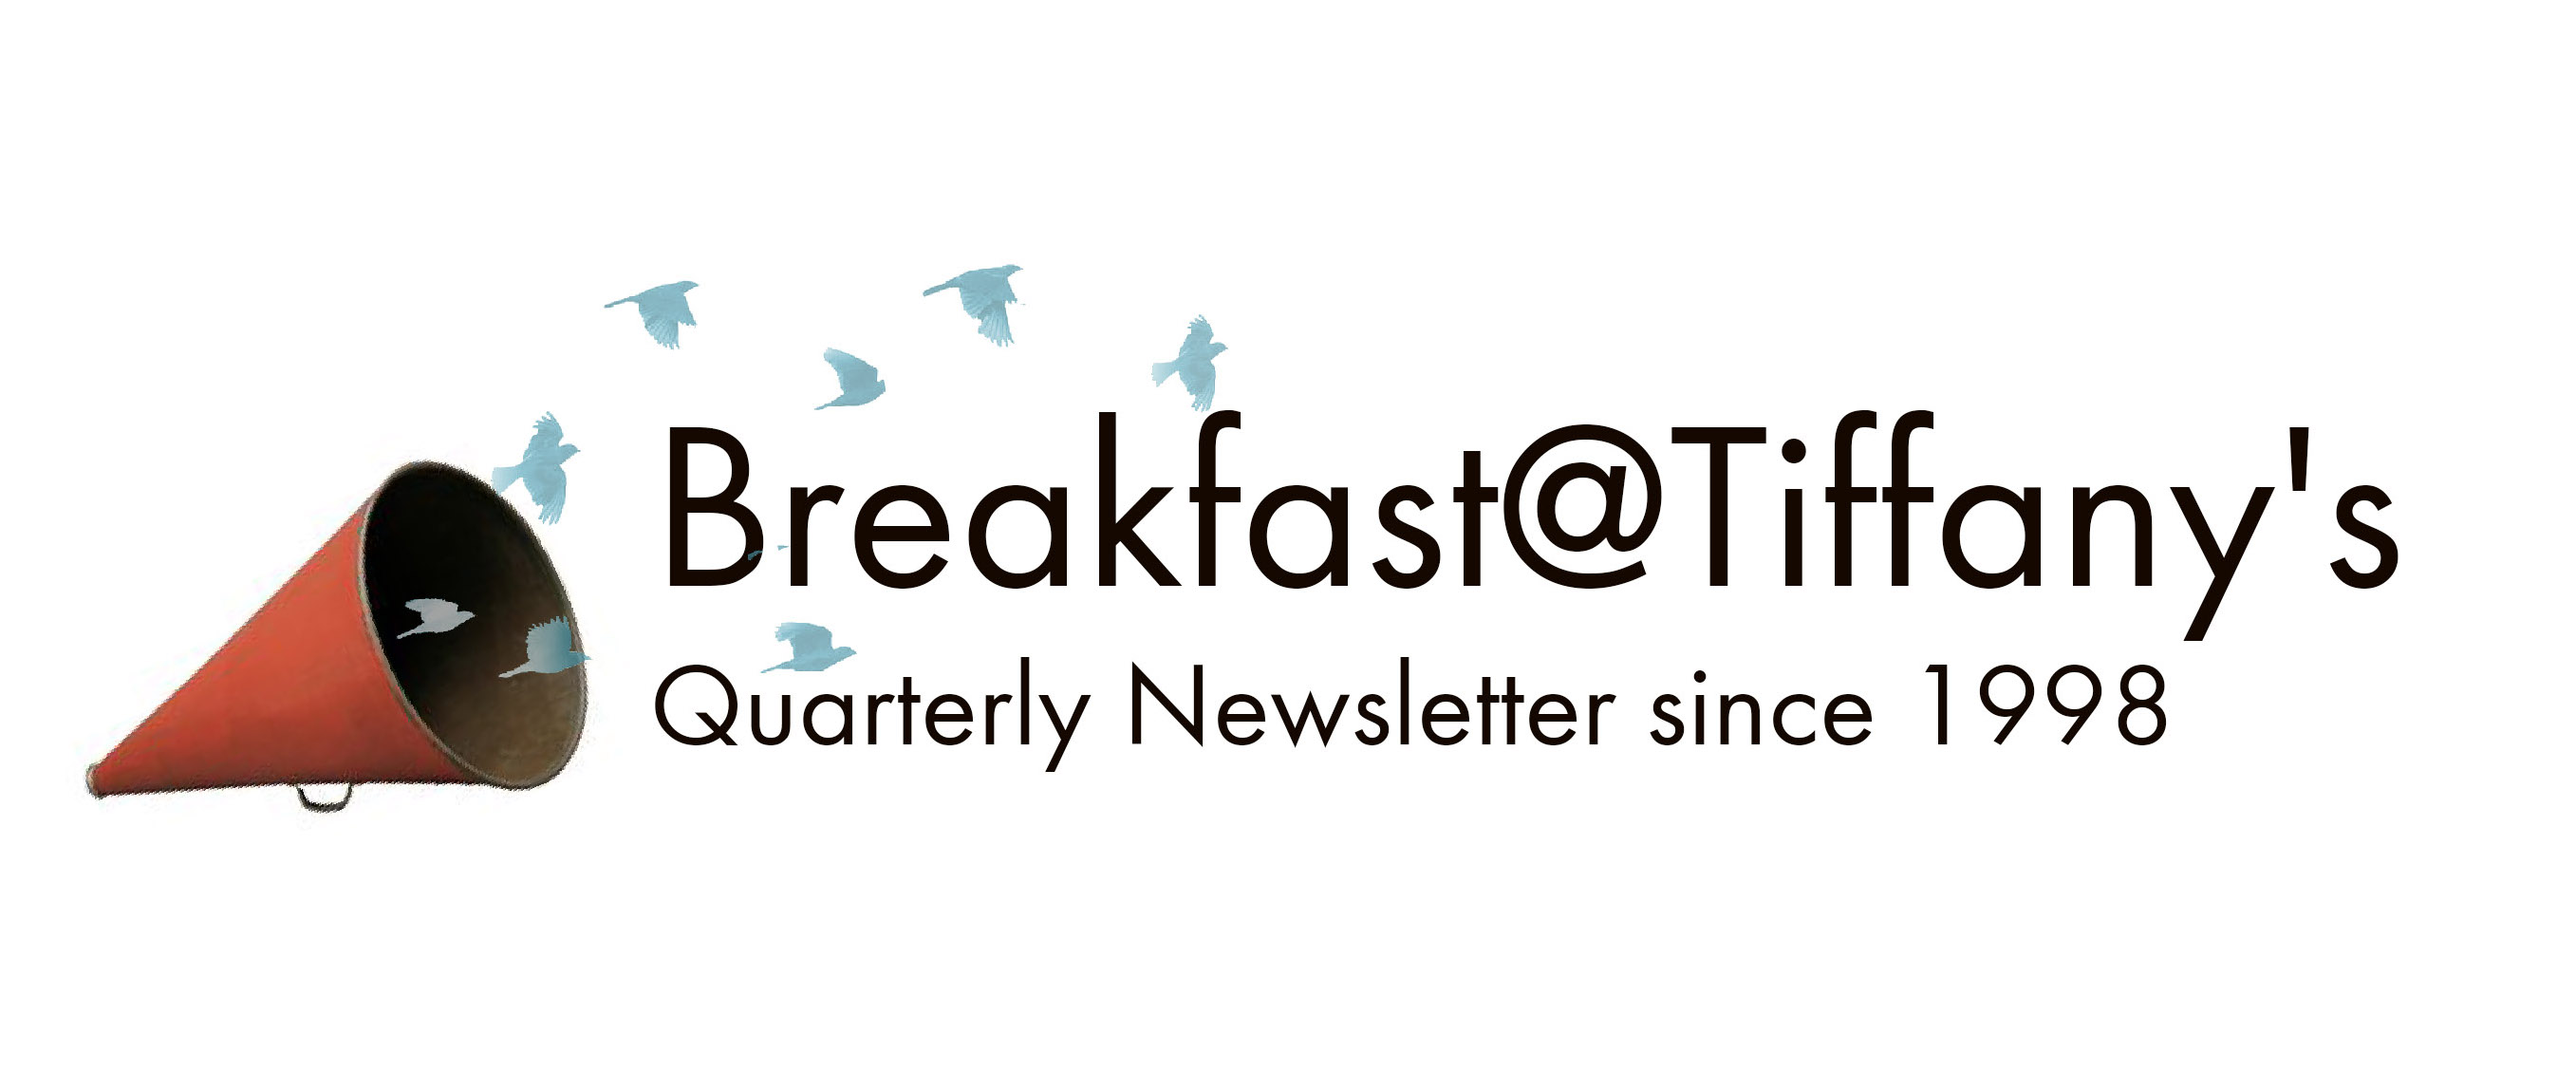 Breakfastlogo1